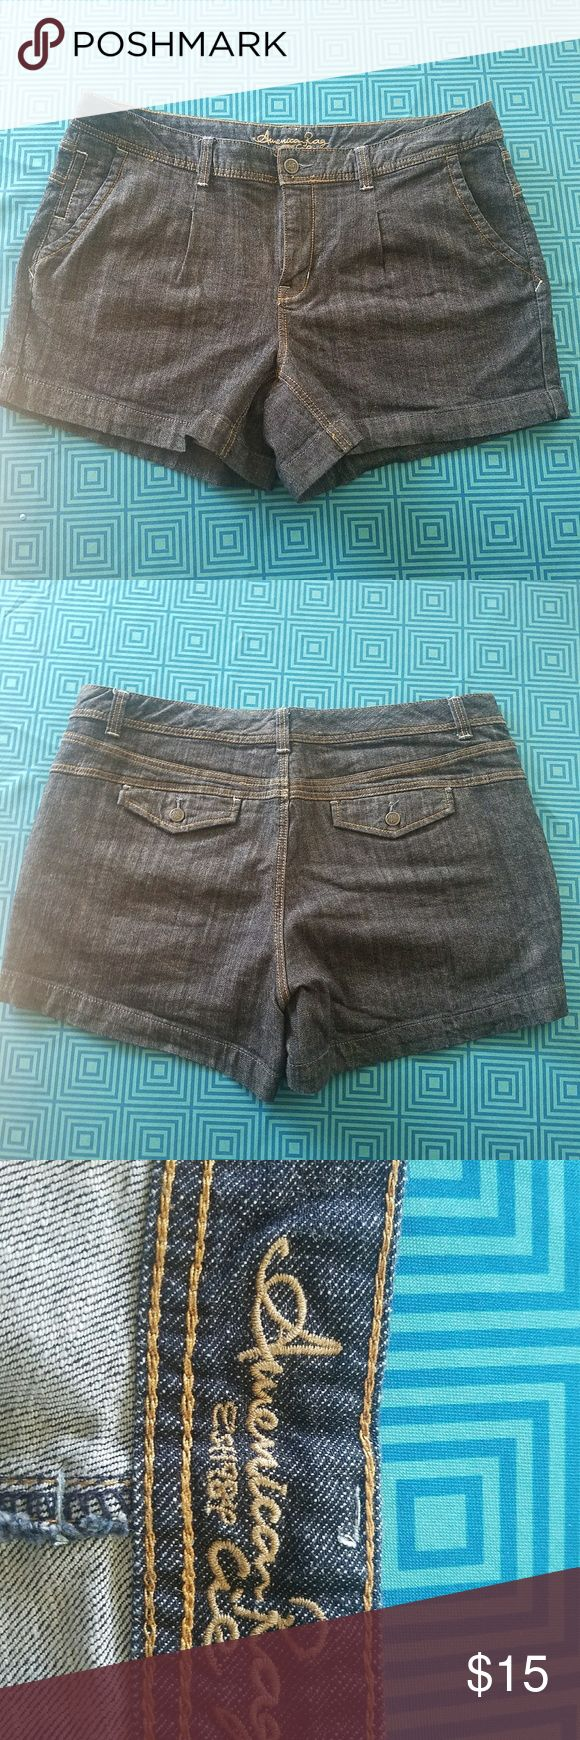 American Rag Jean Shorts size 18 Just what is needed for this summer comfortable jean shorts size 18 made by American Rag. American Rag Shorts Jean Shorts